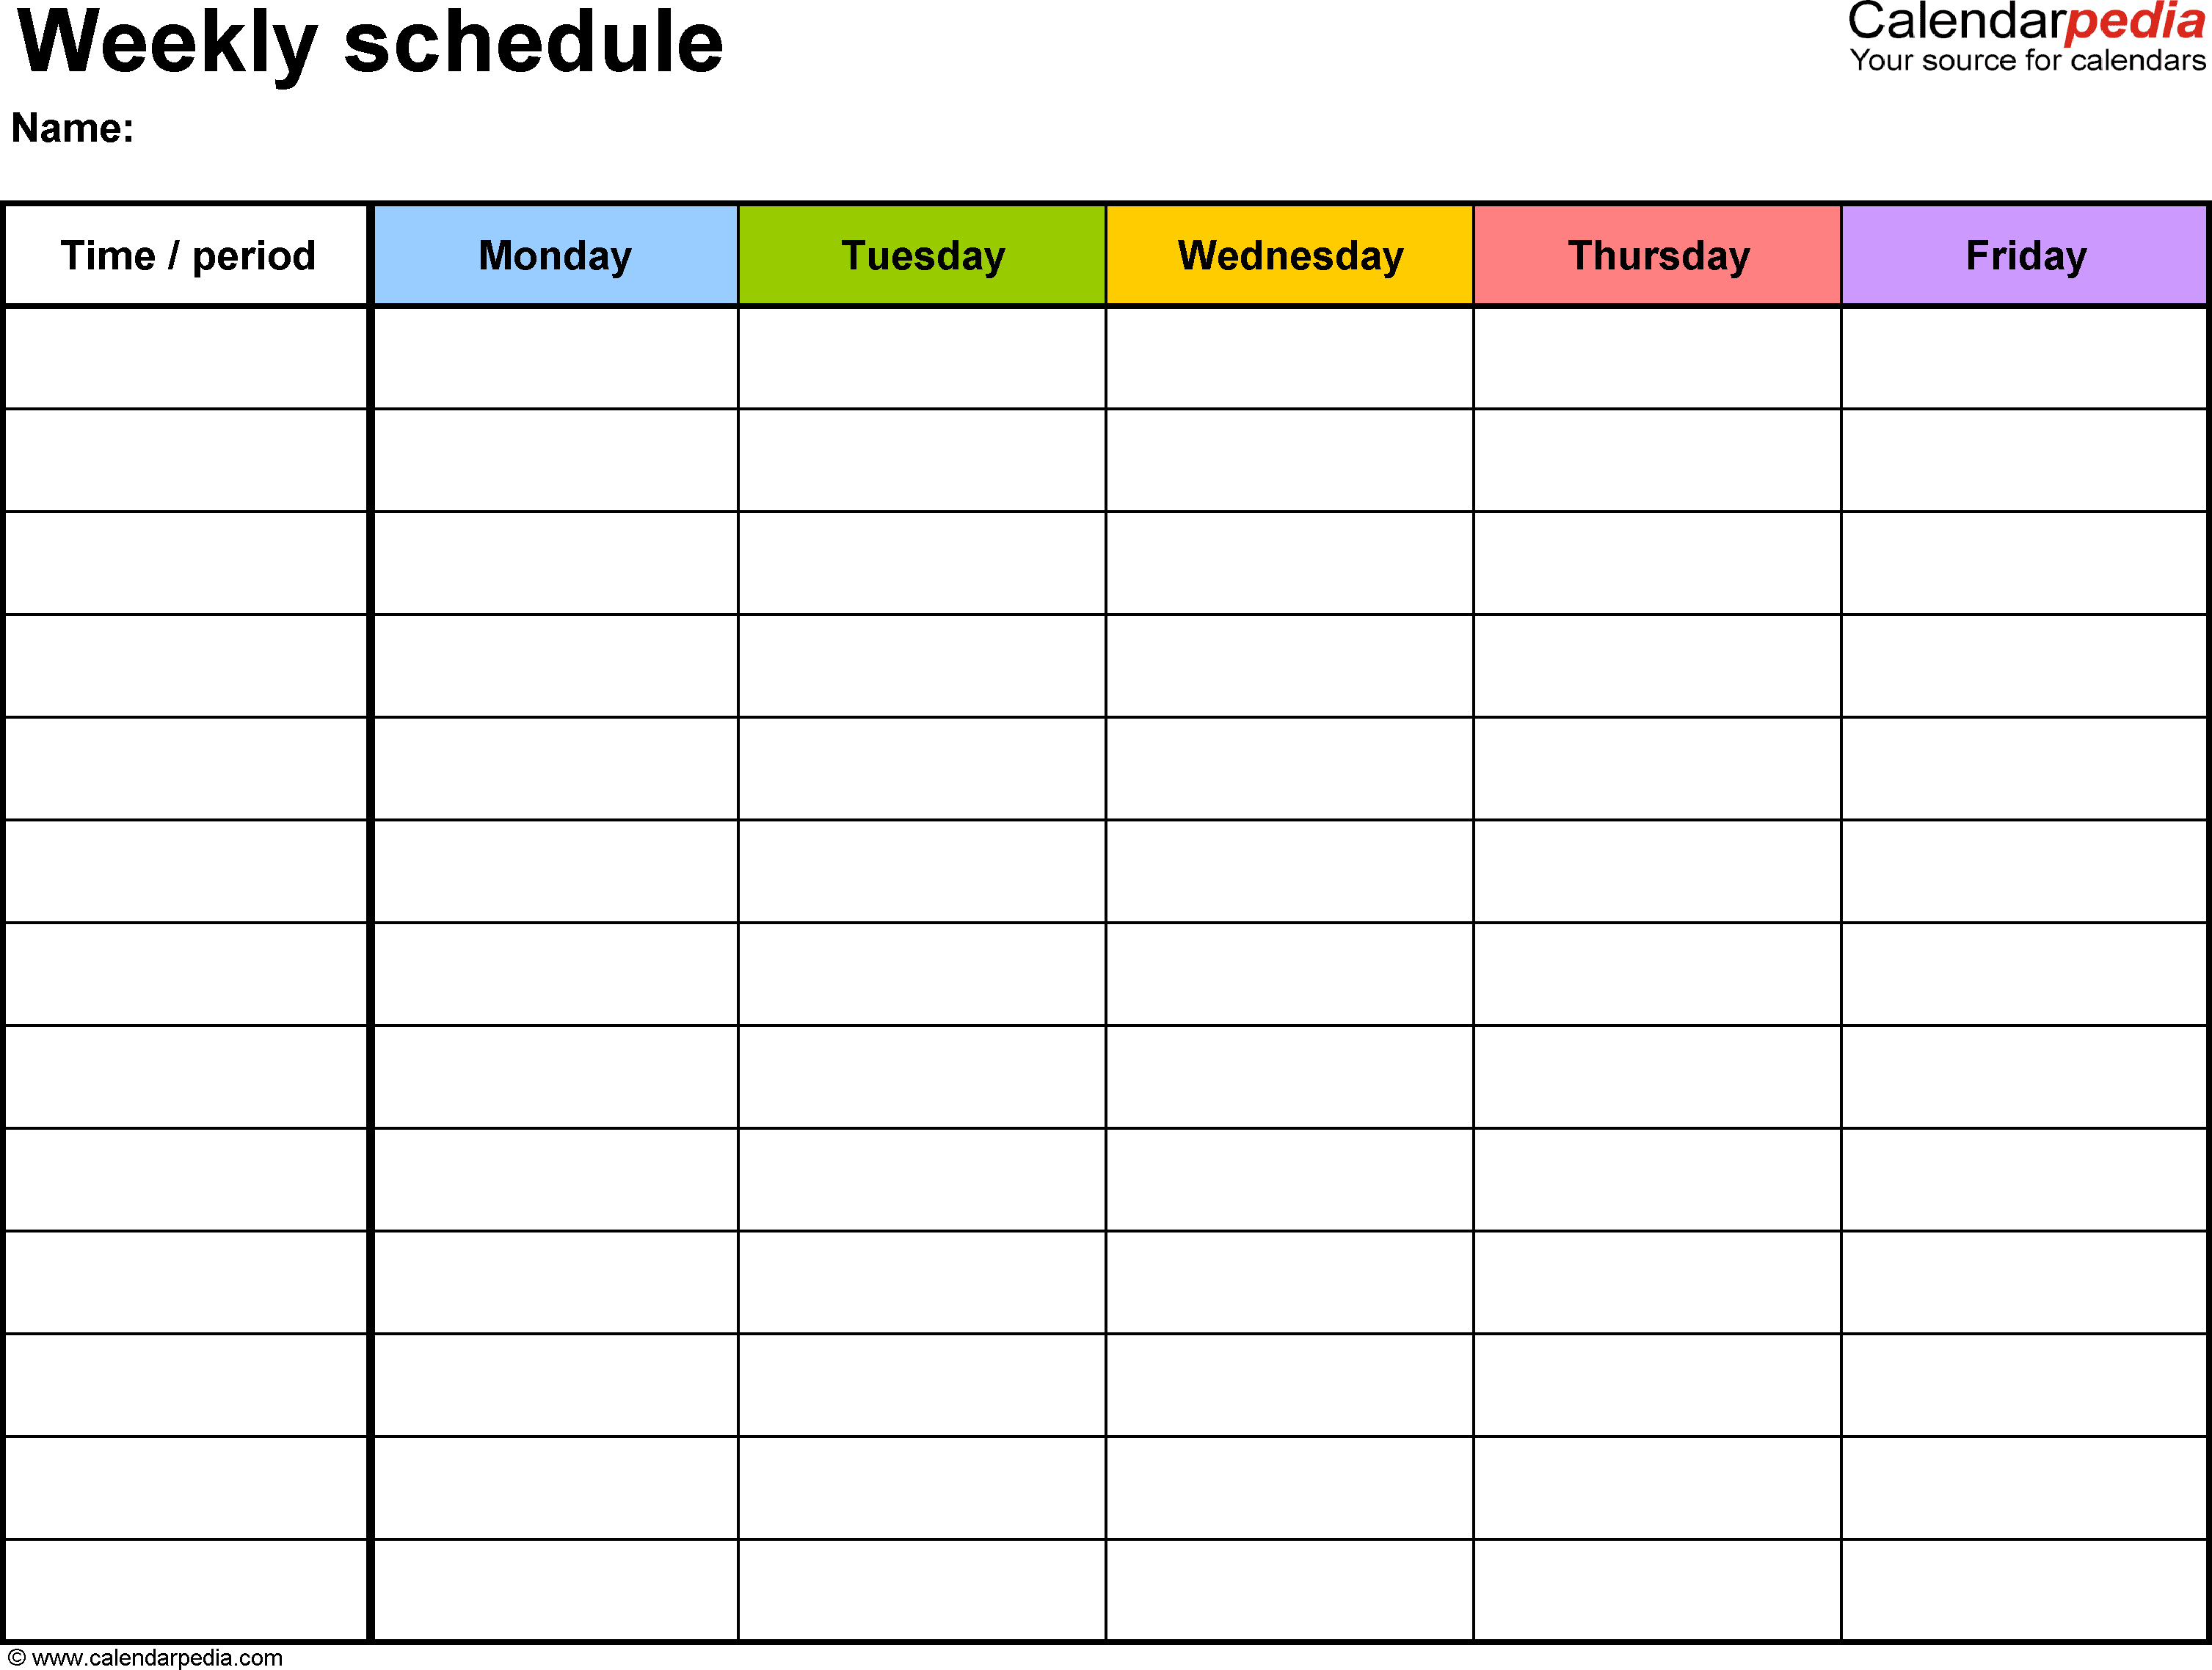 Free Weekly Schedule Templates For Word - 18 Templates pertaining to 5 Day Calendar Template